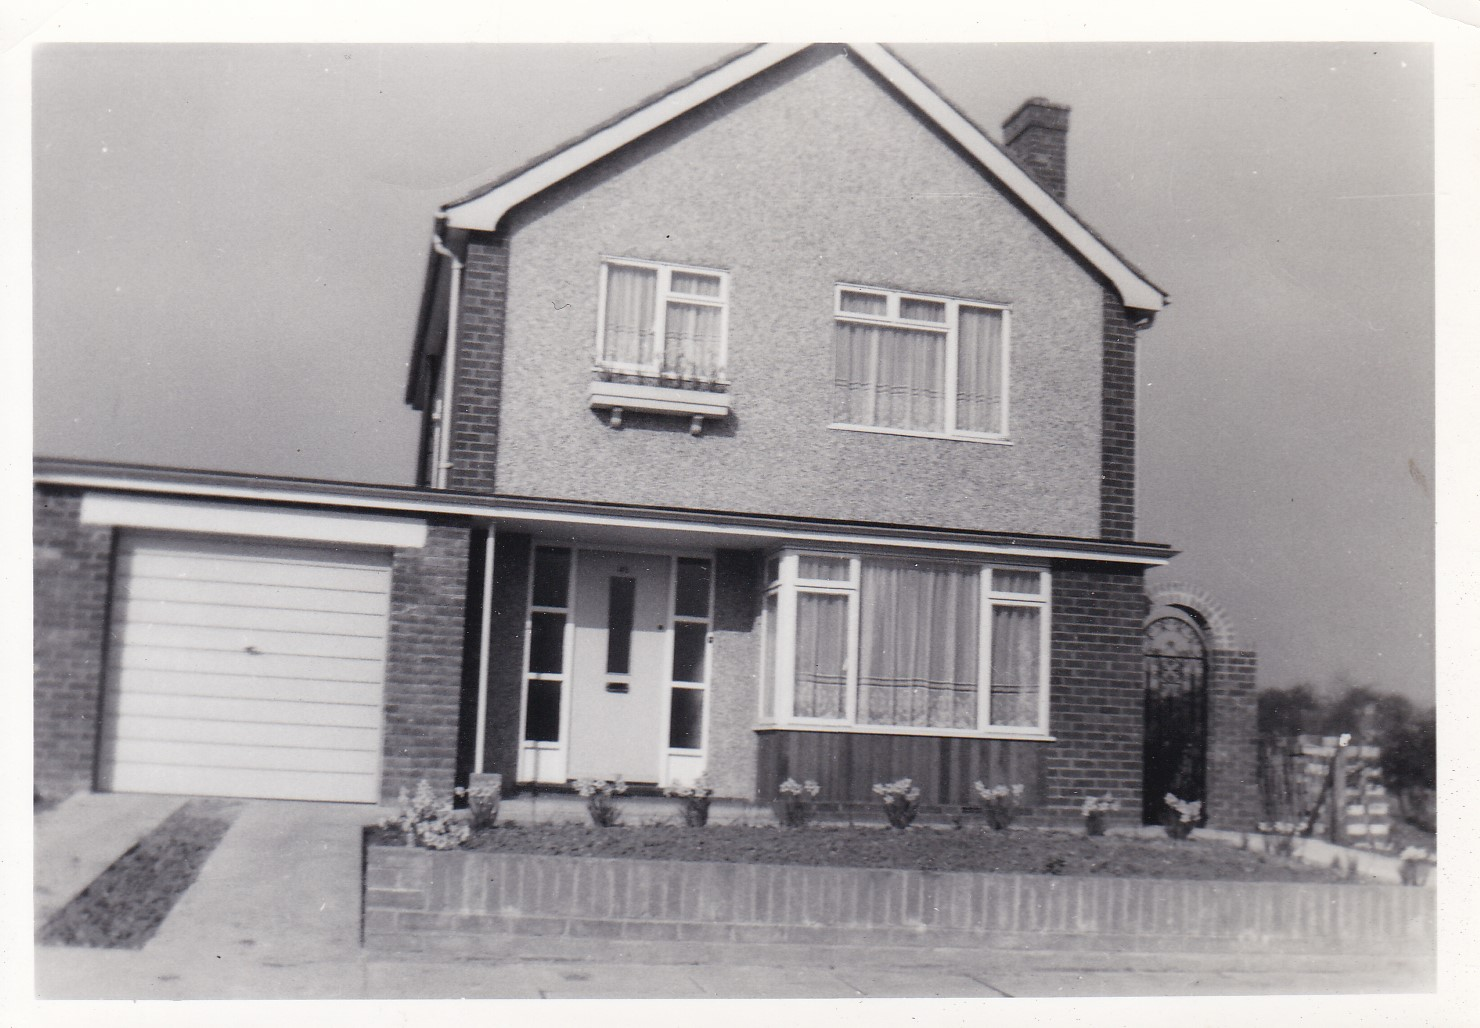 45 Bellamy early 1960s before the flats were built